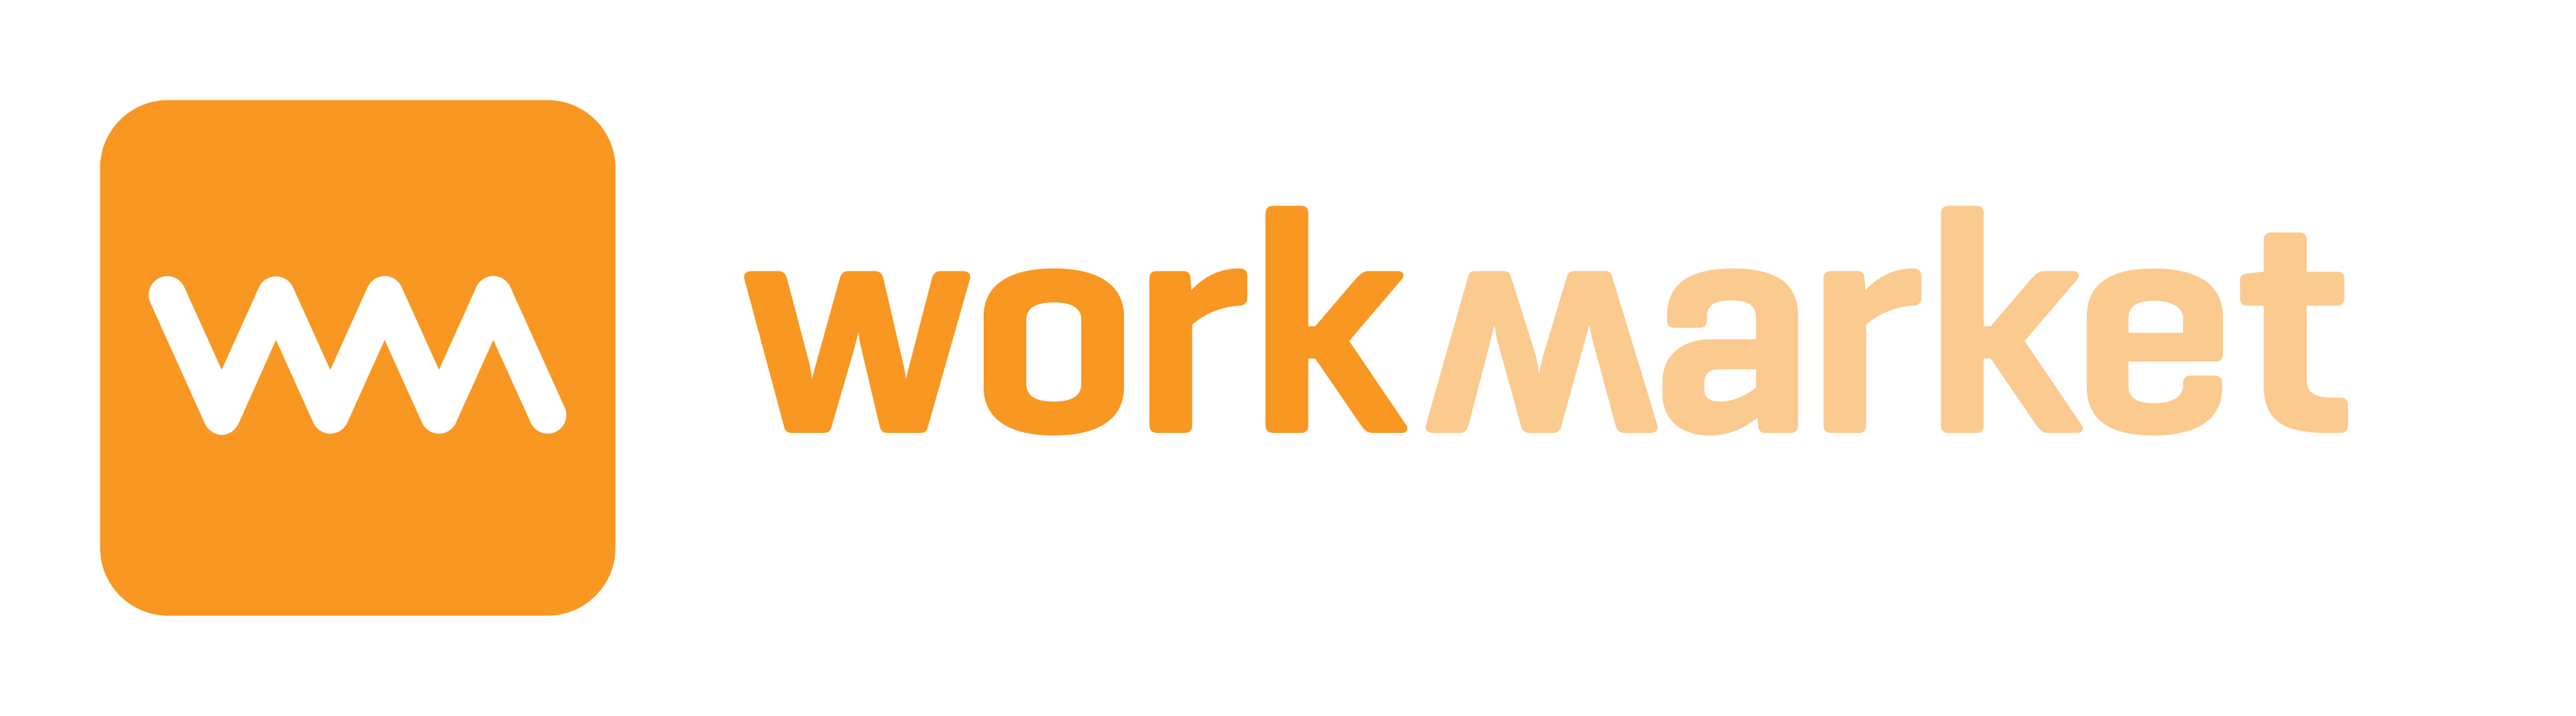 Image result for workmarket logo free png